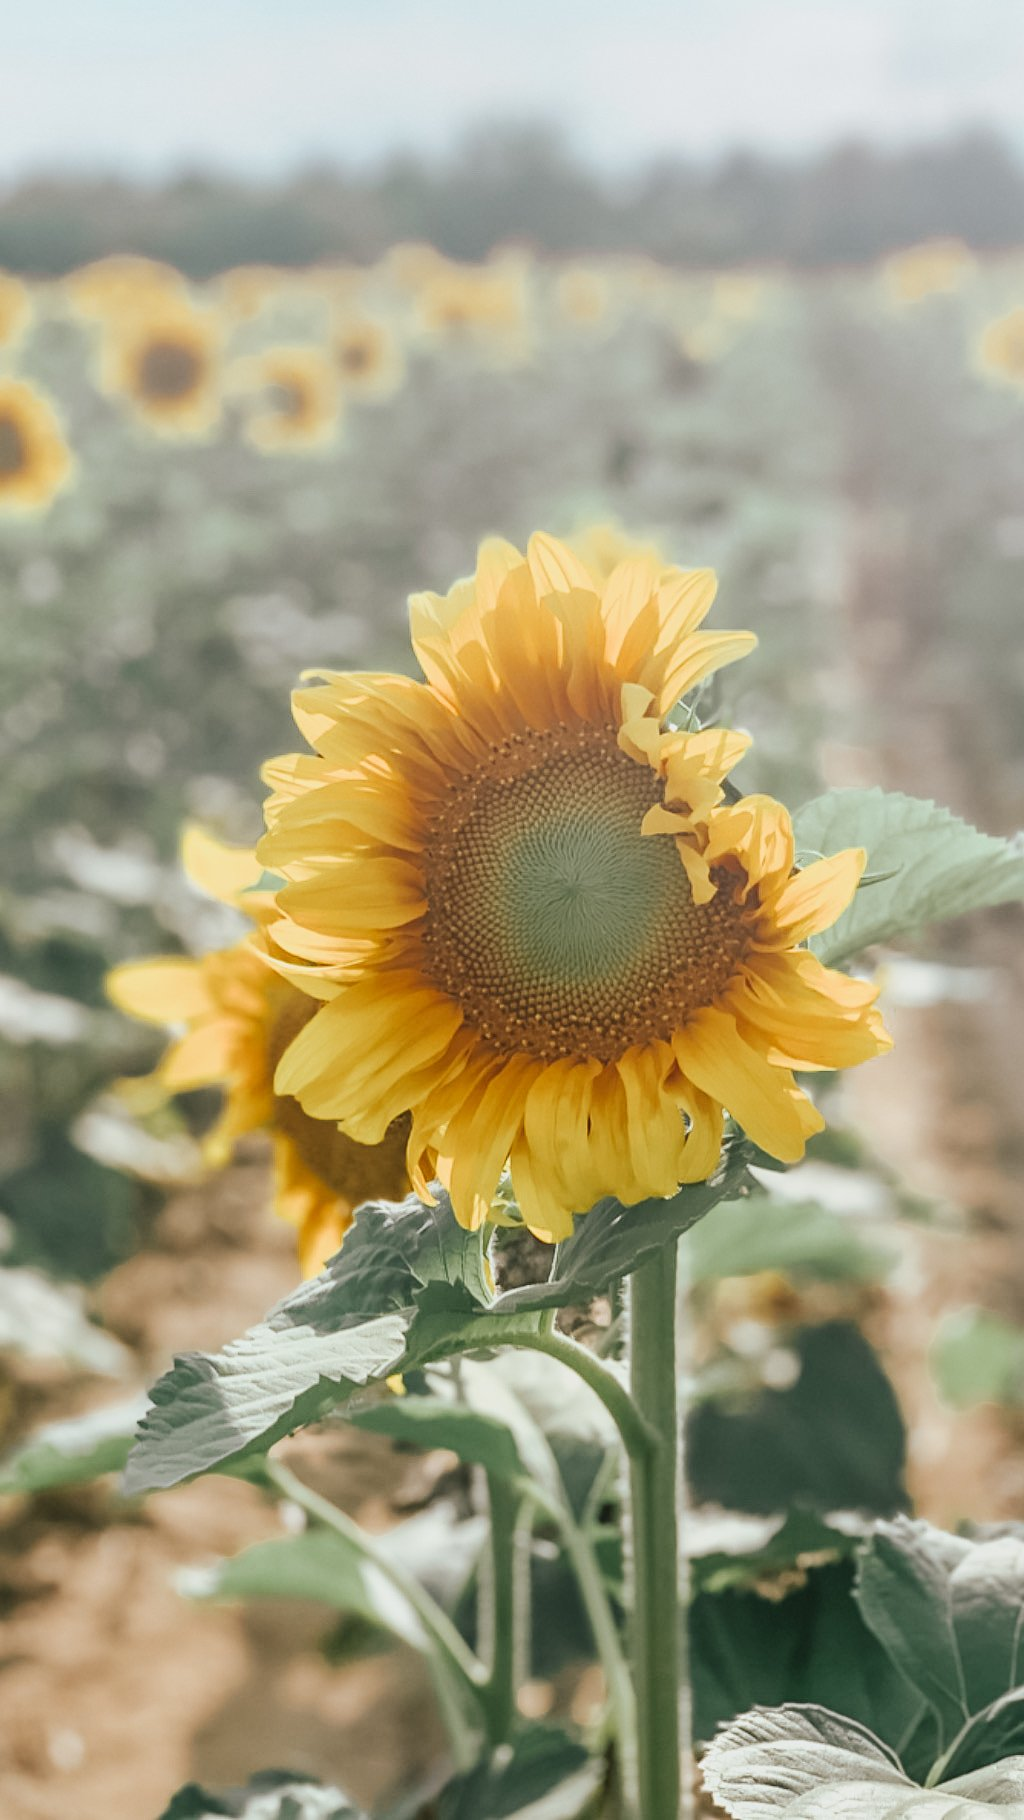 sunflower days